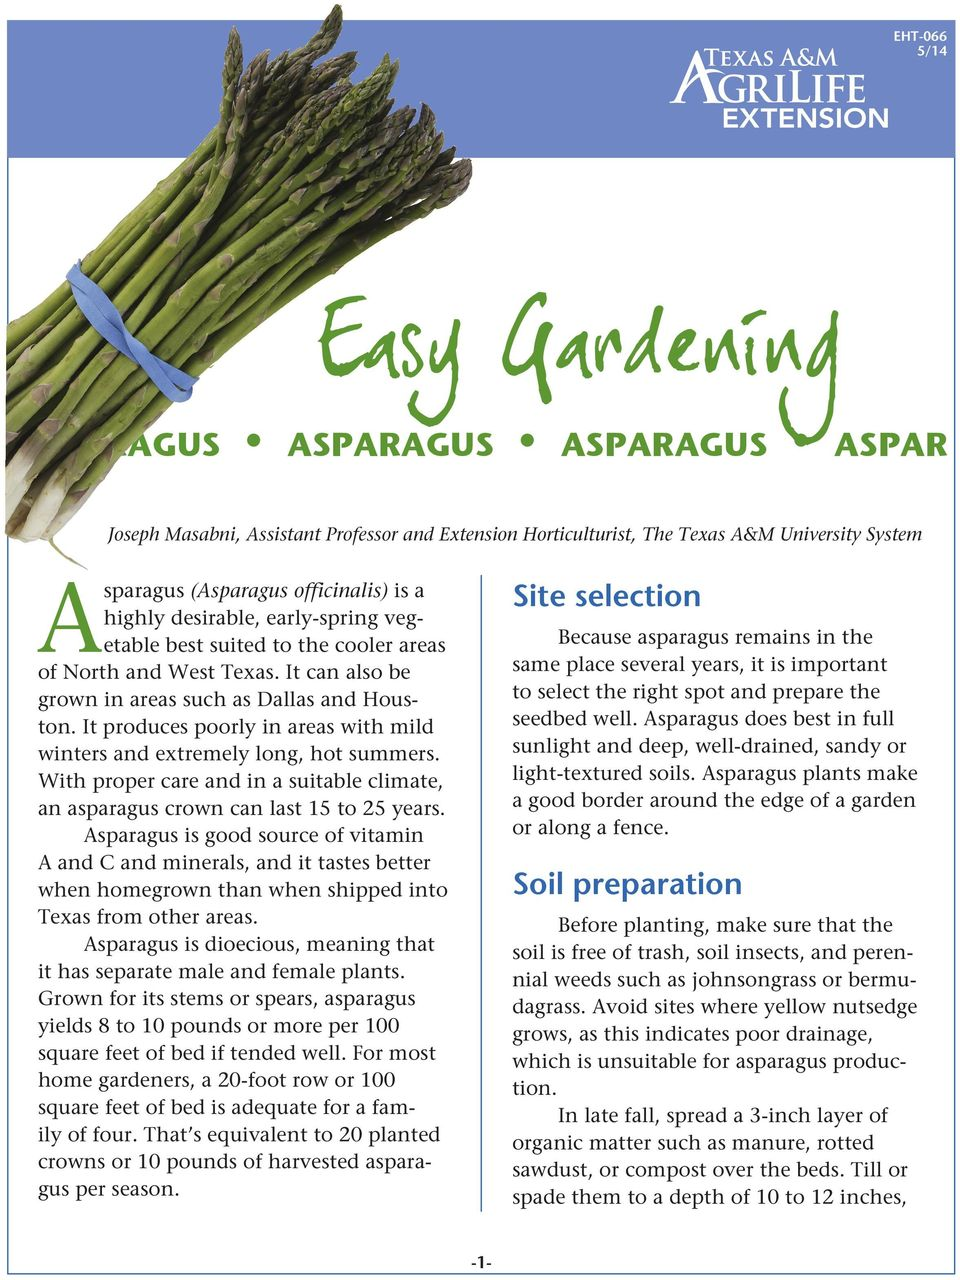 It produces poorly in areas with mild winters and extremely long, hot summers. With proper care and in a suitable climate, an asparagus crown can last 15 to 25 years.